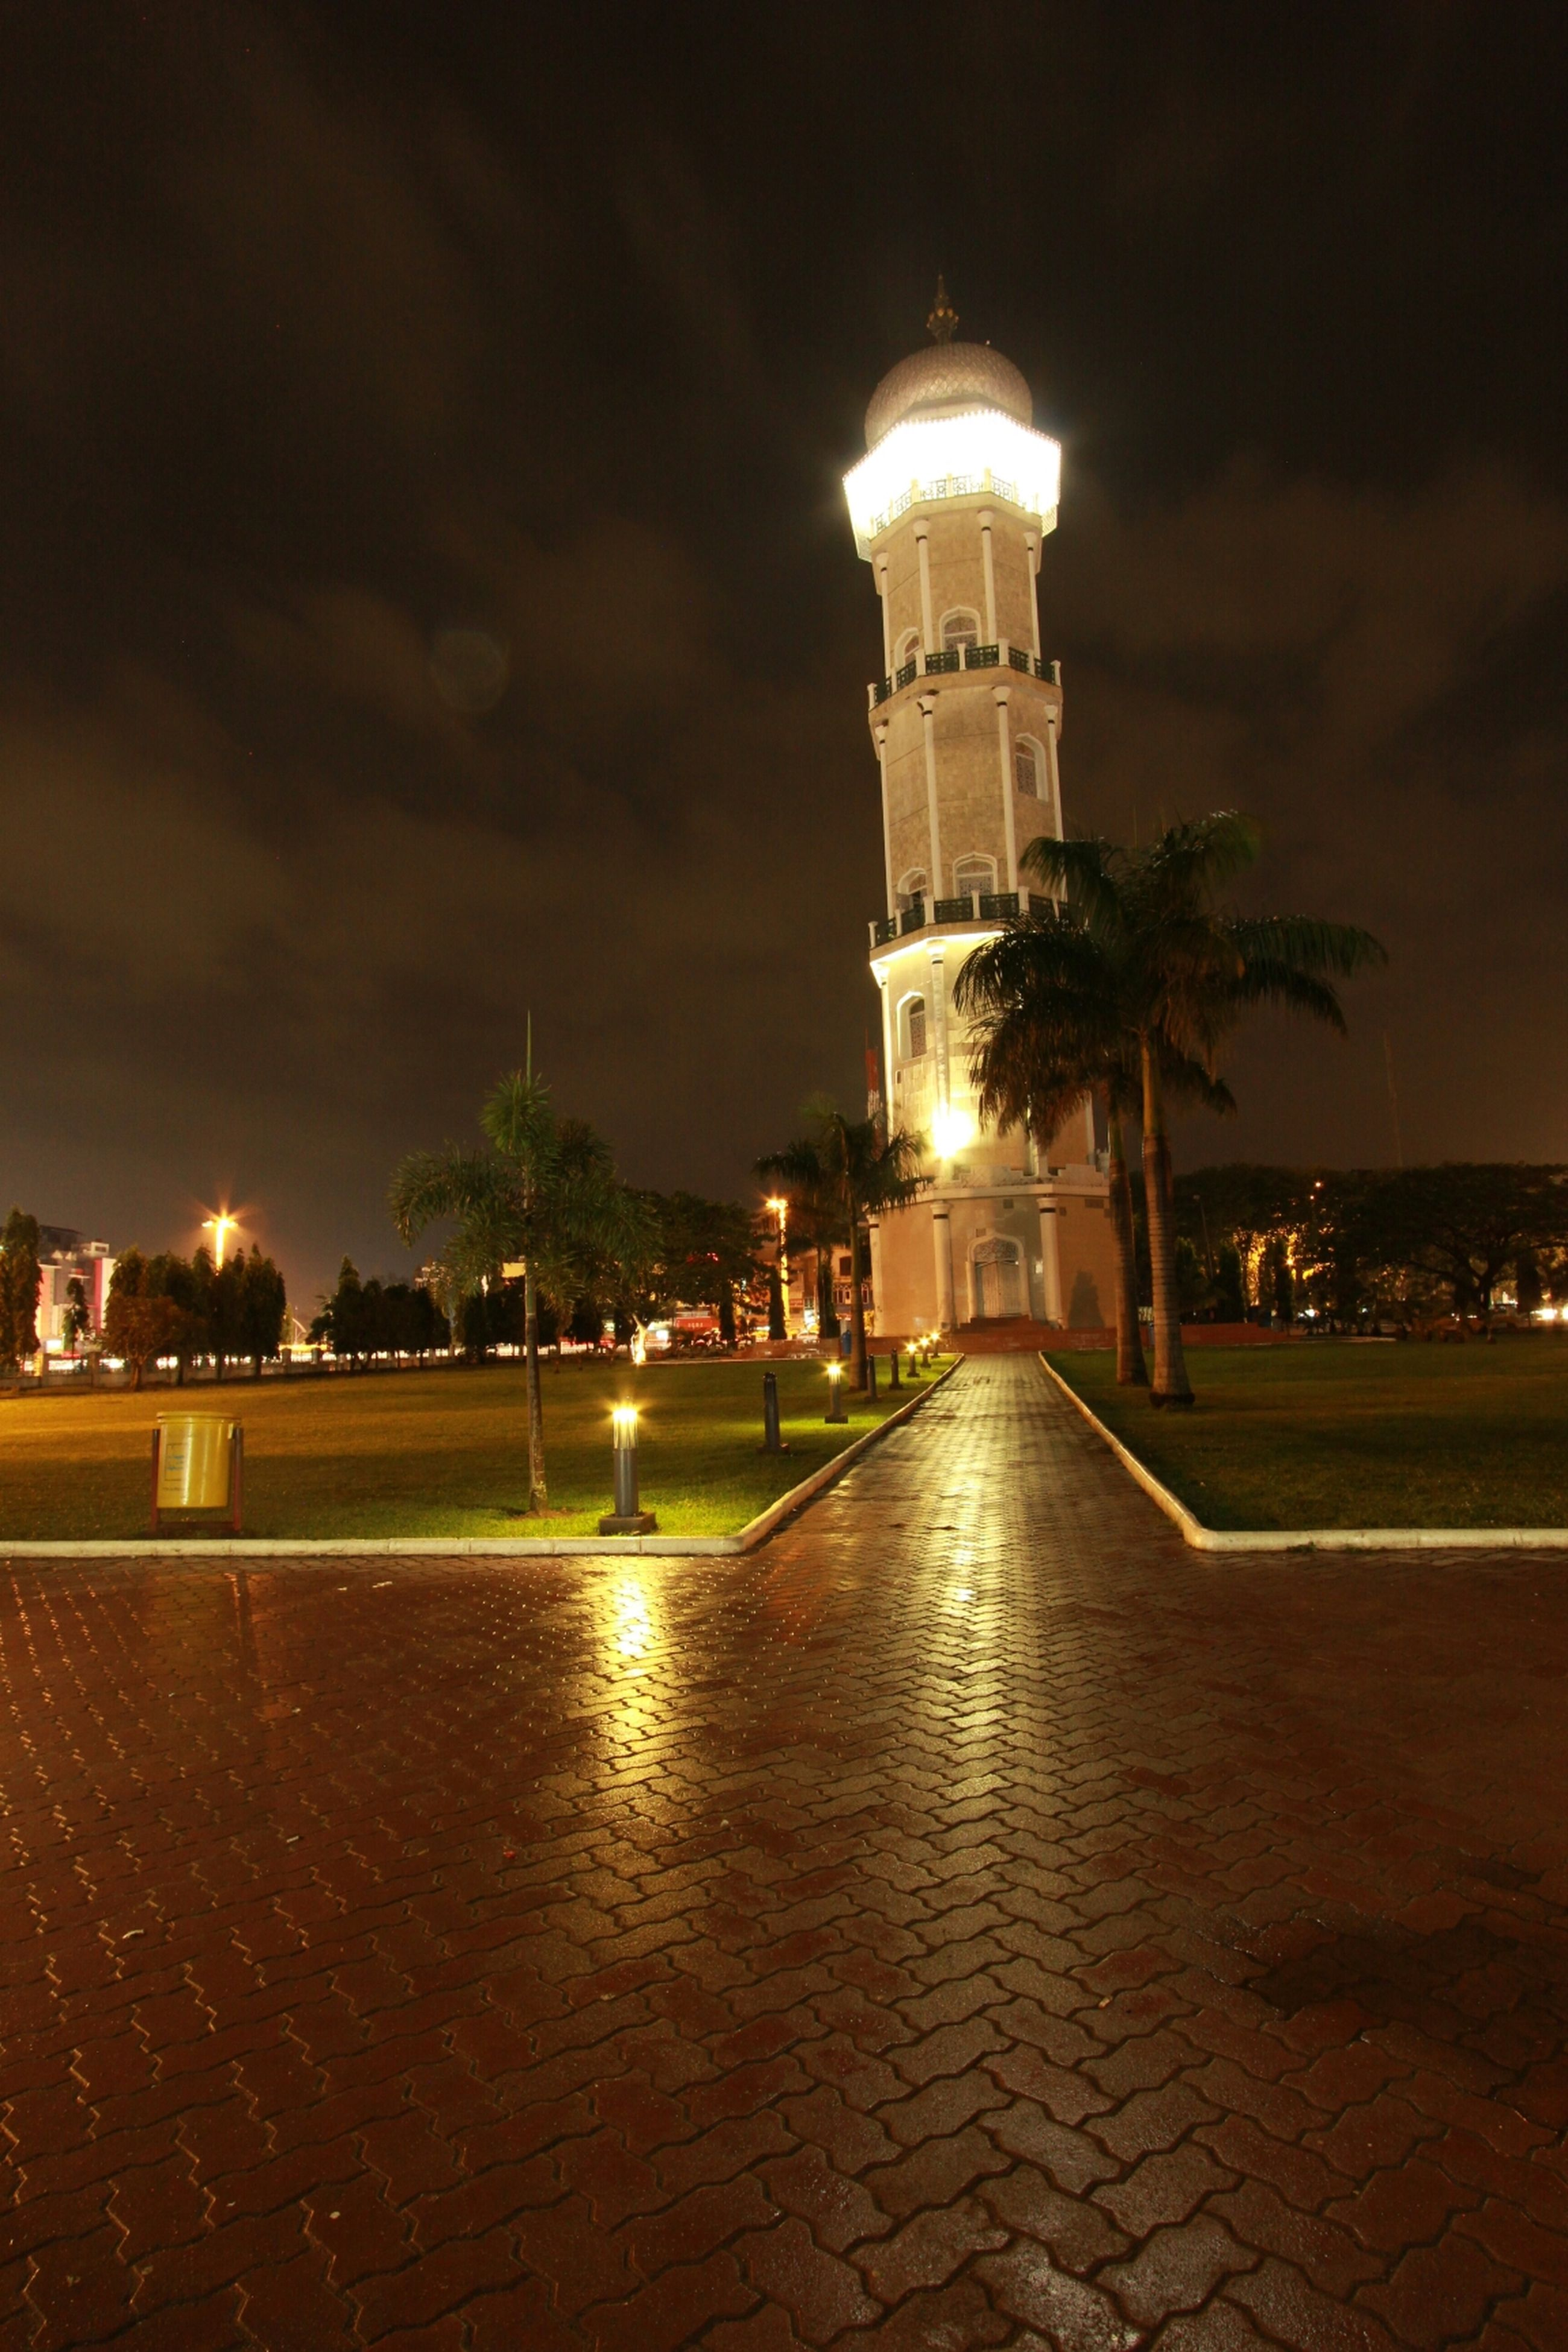 architecture, building exterior, built structure, sky, illuminated, night, tower, cloud - sky, street light, lighting equipment, city, the way forward, travel destinations, dusk, outdoors, street, footpath, famous place, cloudy, travel